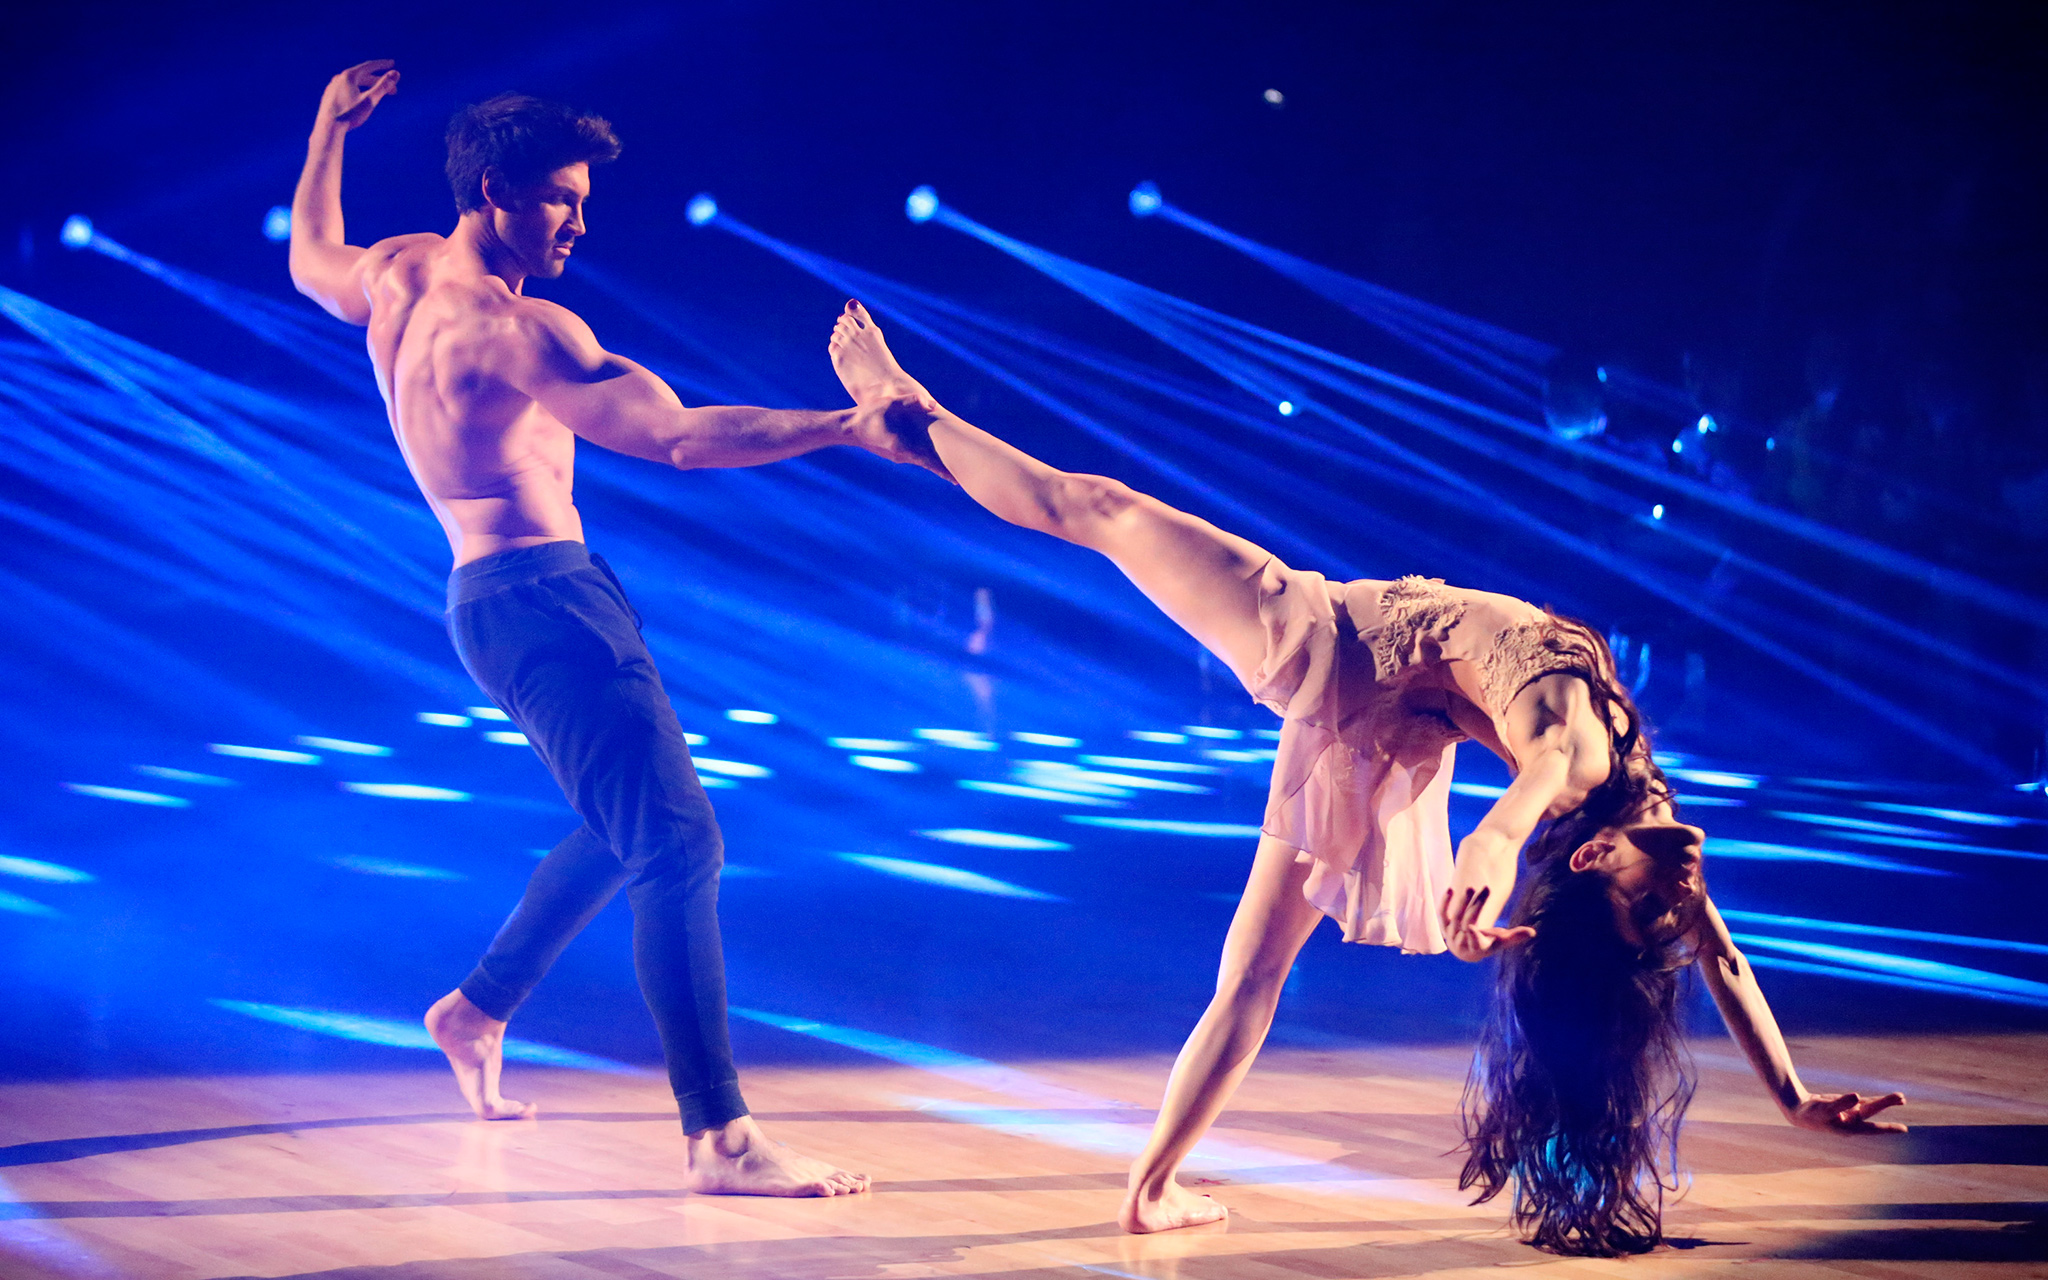 is max dating meryl on dancing with the stars Meryl davis & maks- all night dwts 18-week-1  meryl davis & maks - waltz - dancing with the stars 2014 5-12-14  maksim chmerkovskiy & meryl davis dancing foxtrot on dwts 3 31 14.